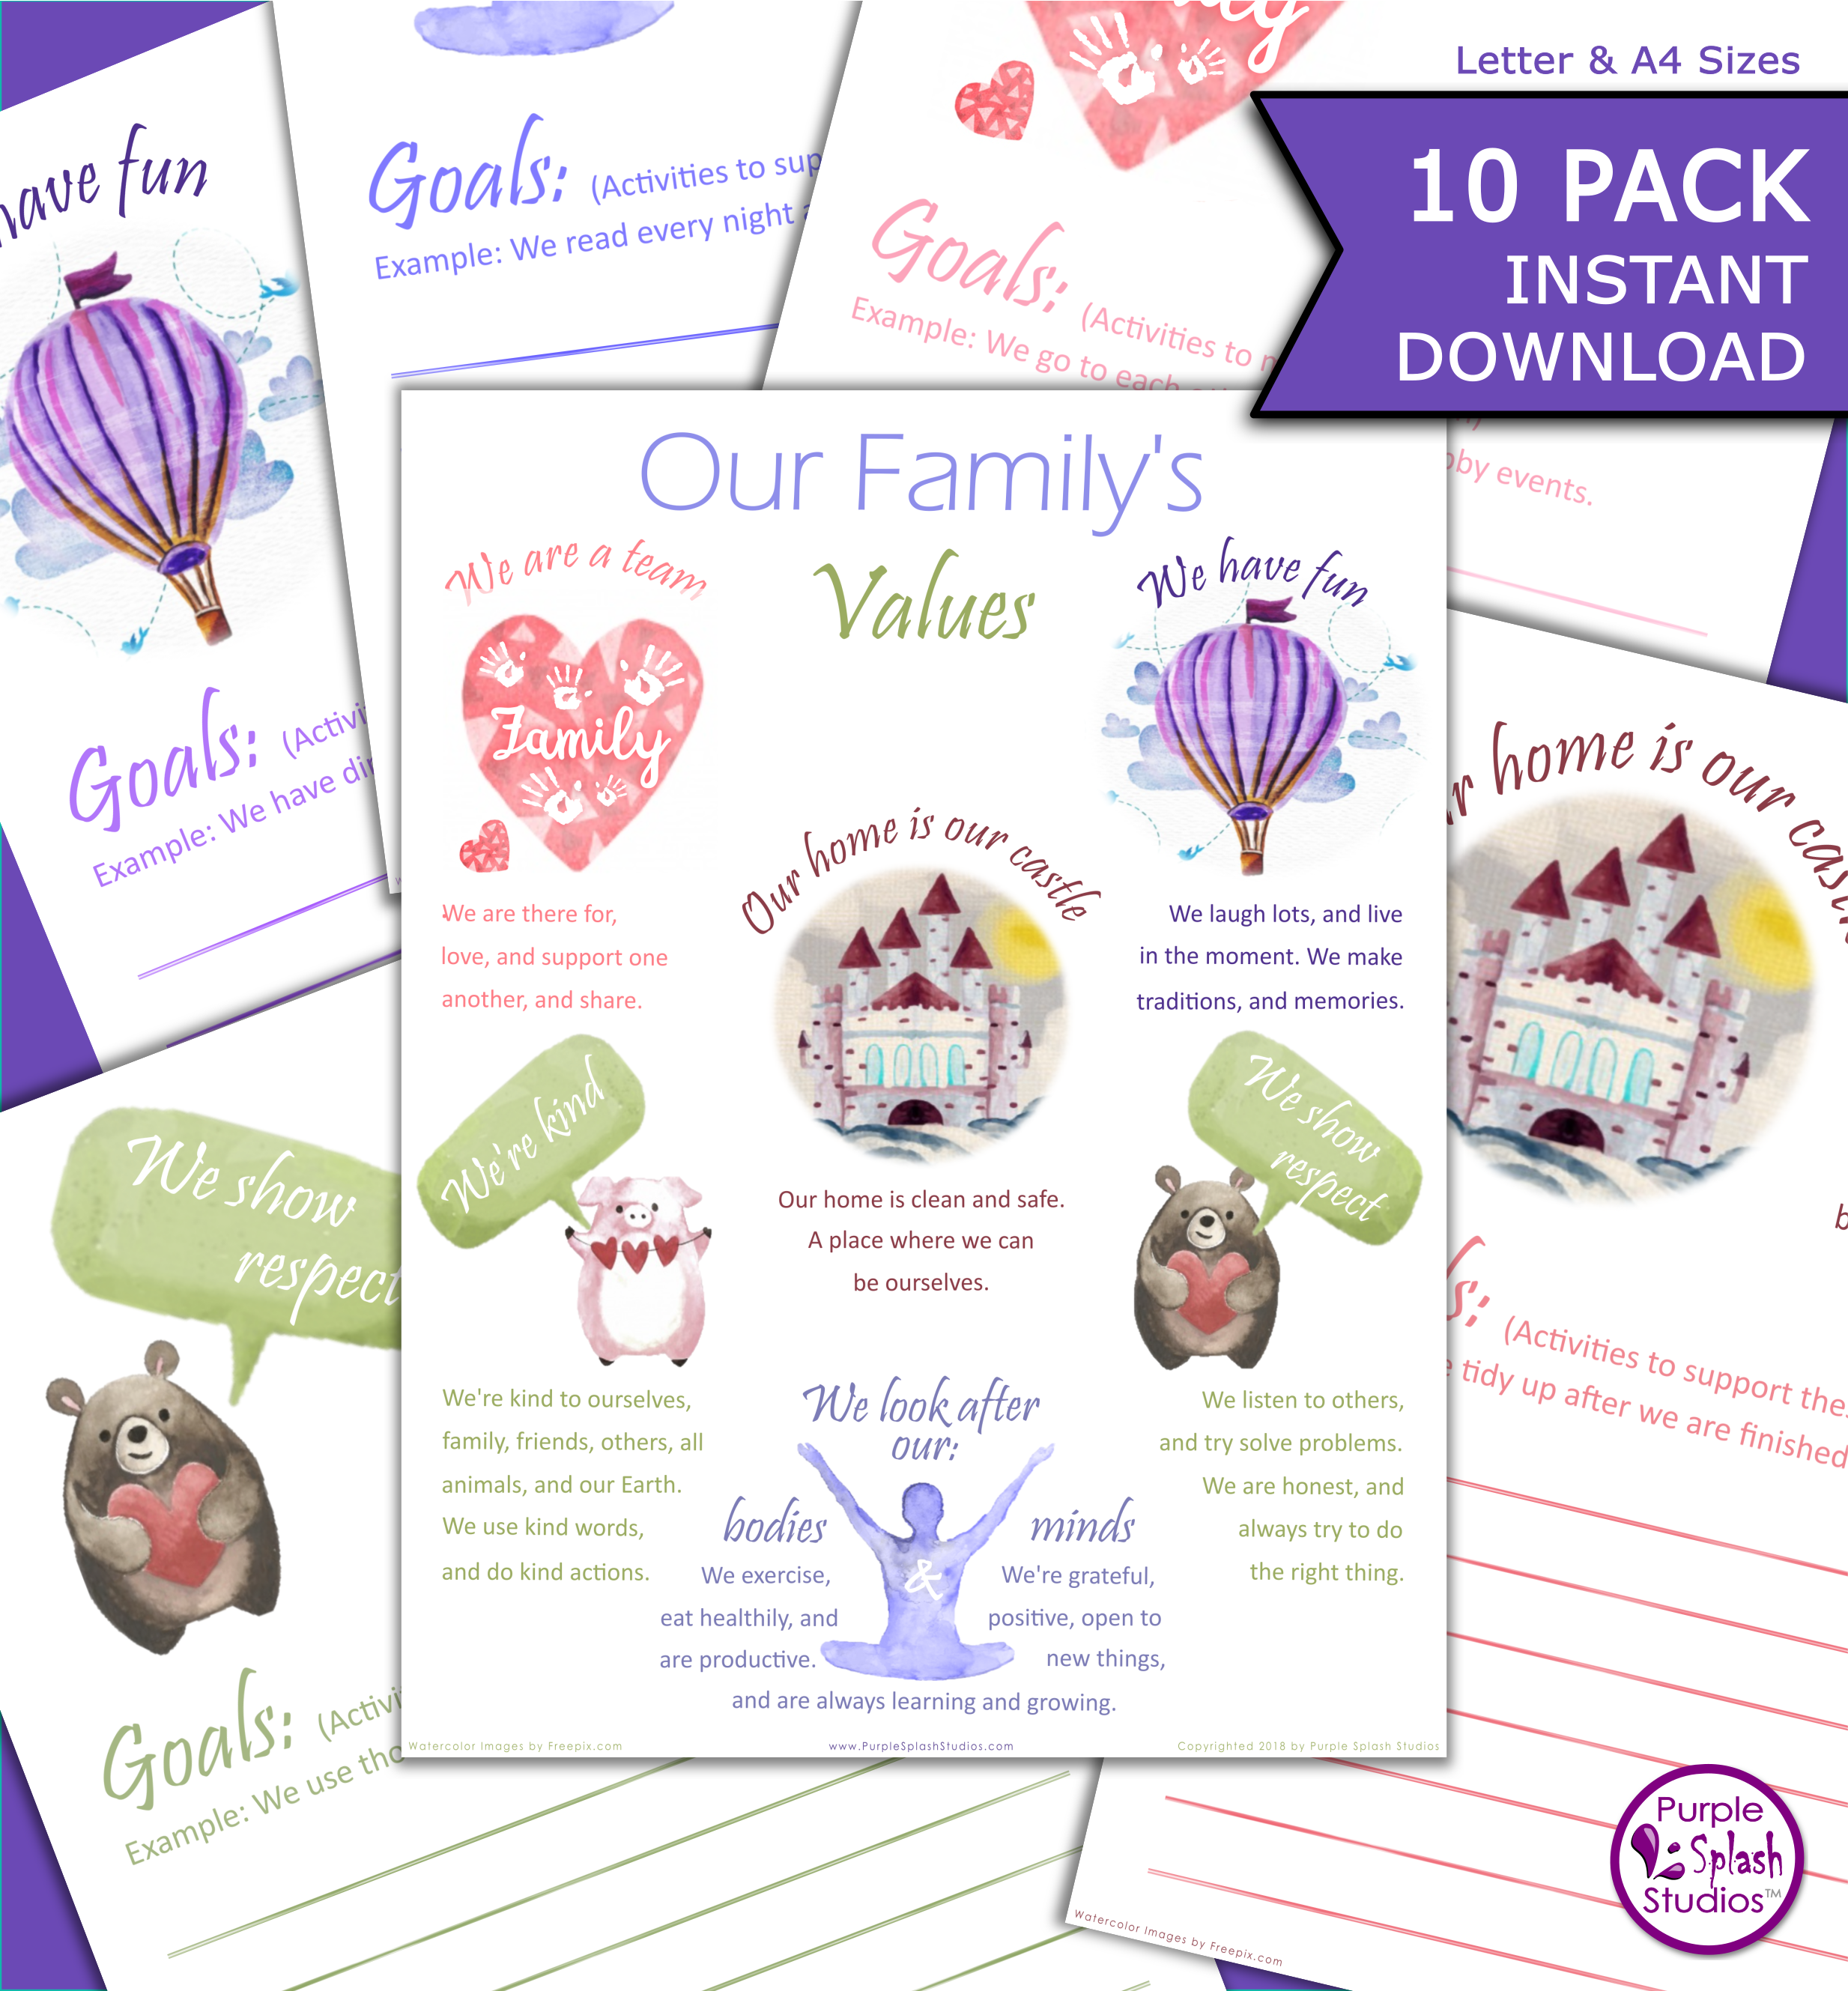 This Family Values Poster And Goal Worksheet Printable